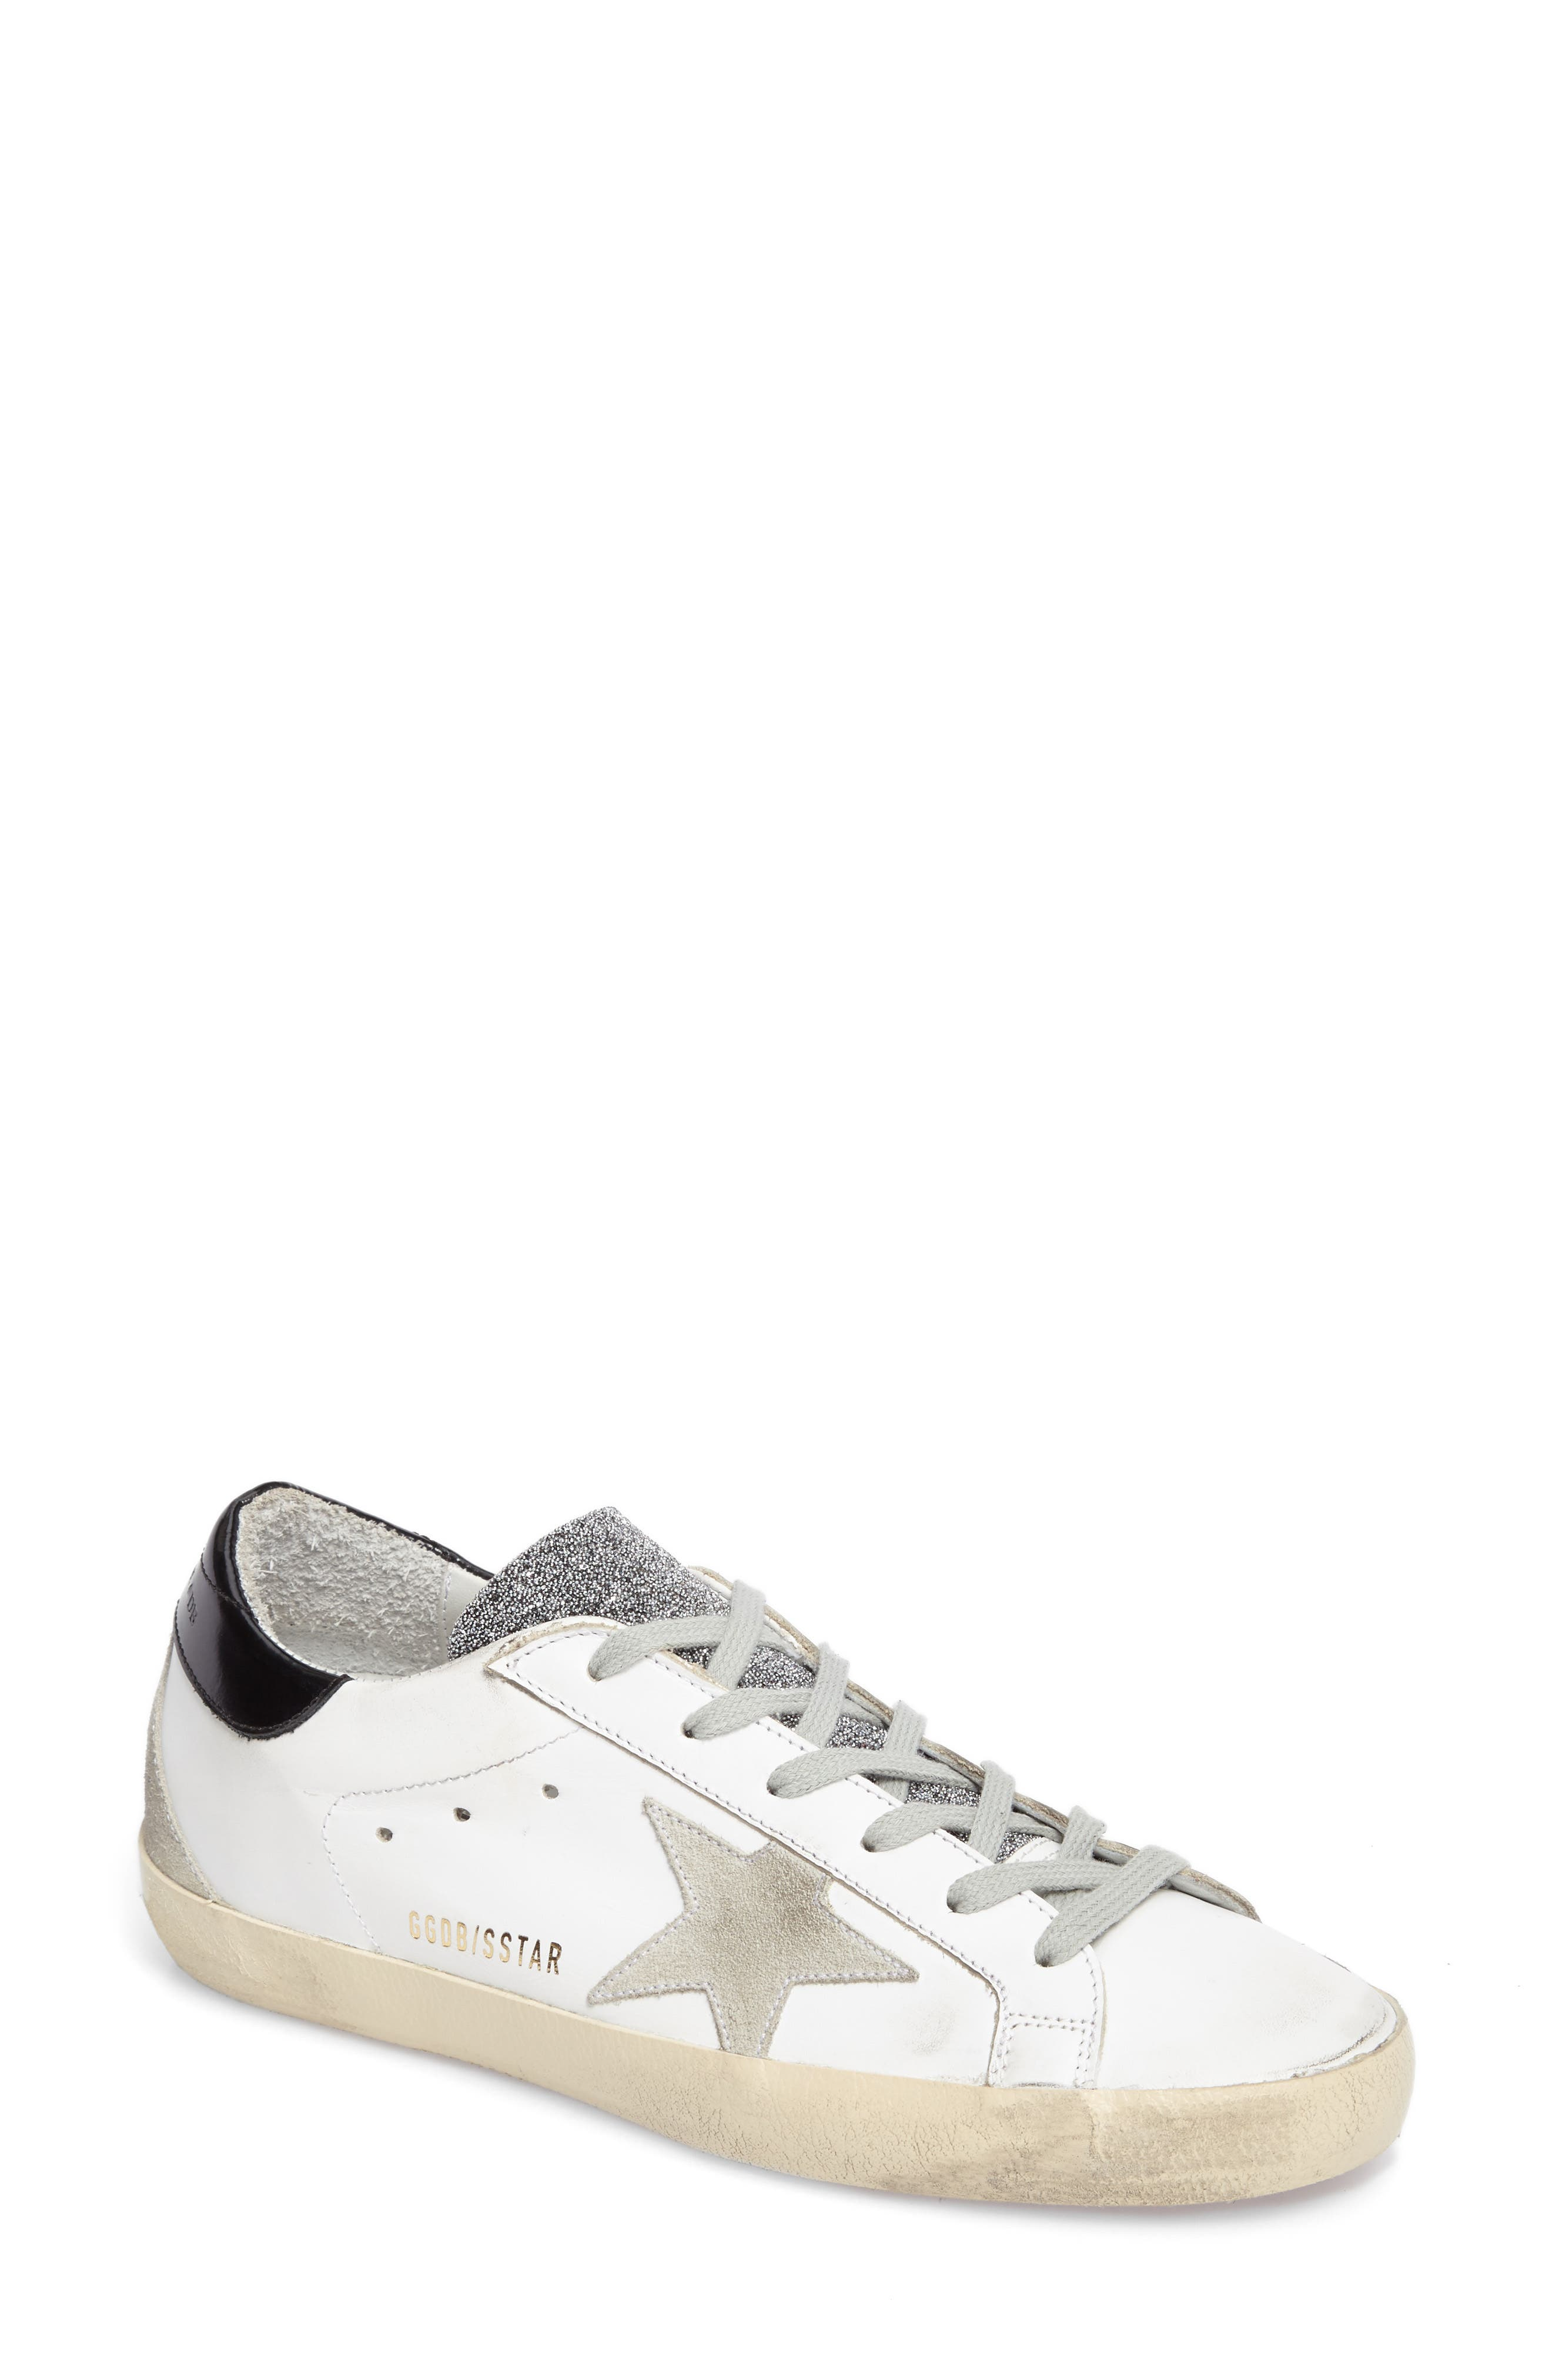 Superstar Low Top Sneaker,                             Main thumbnail 1, color,                             100